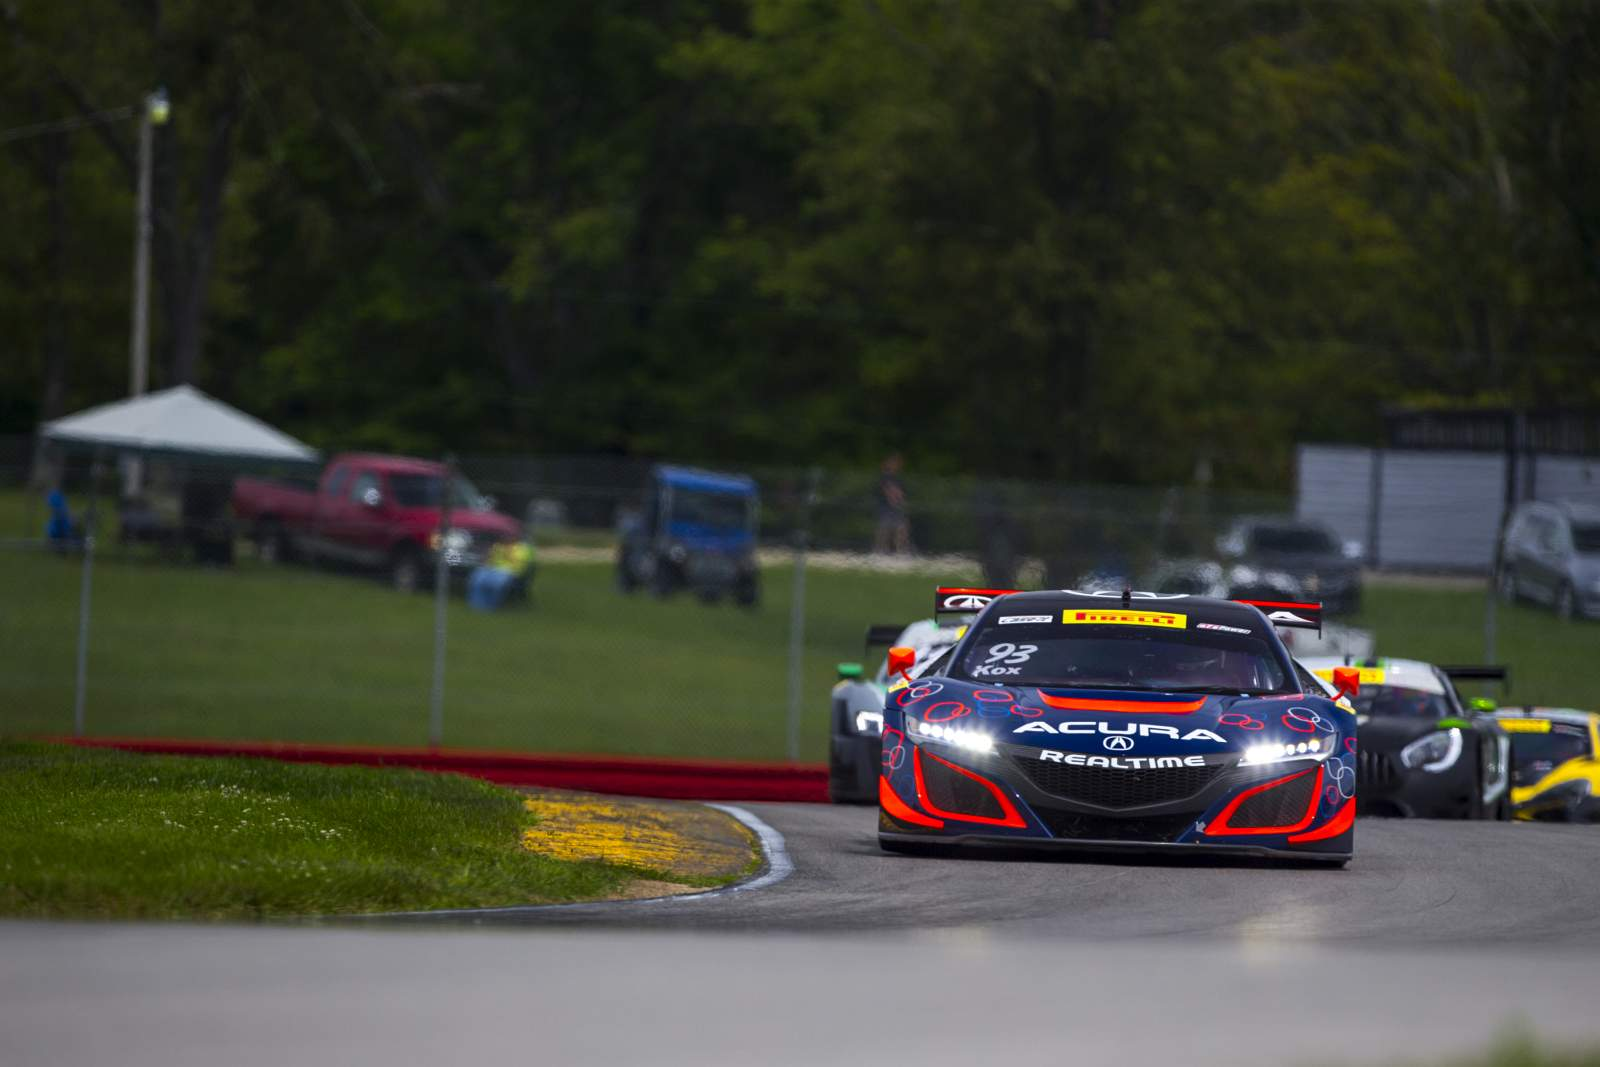 peter-kox-realtime-racing-pirelli-world-challenge-mid-ohio-02